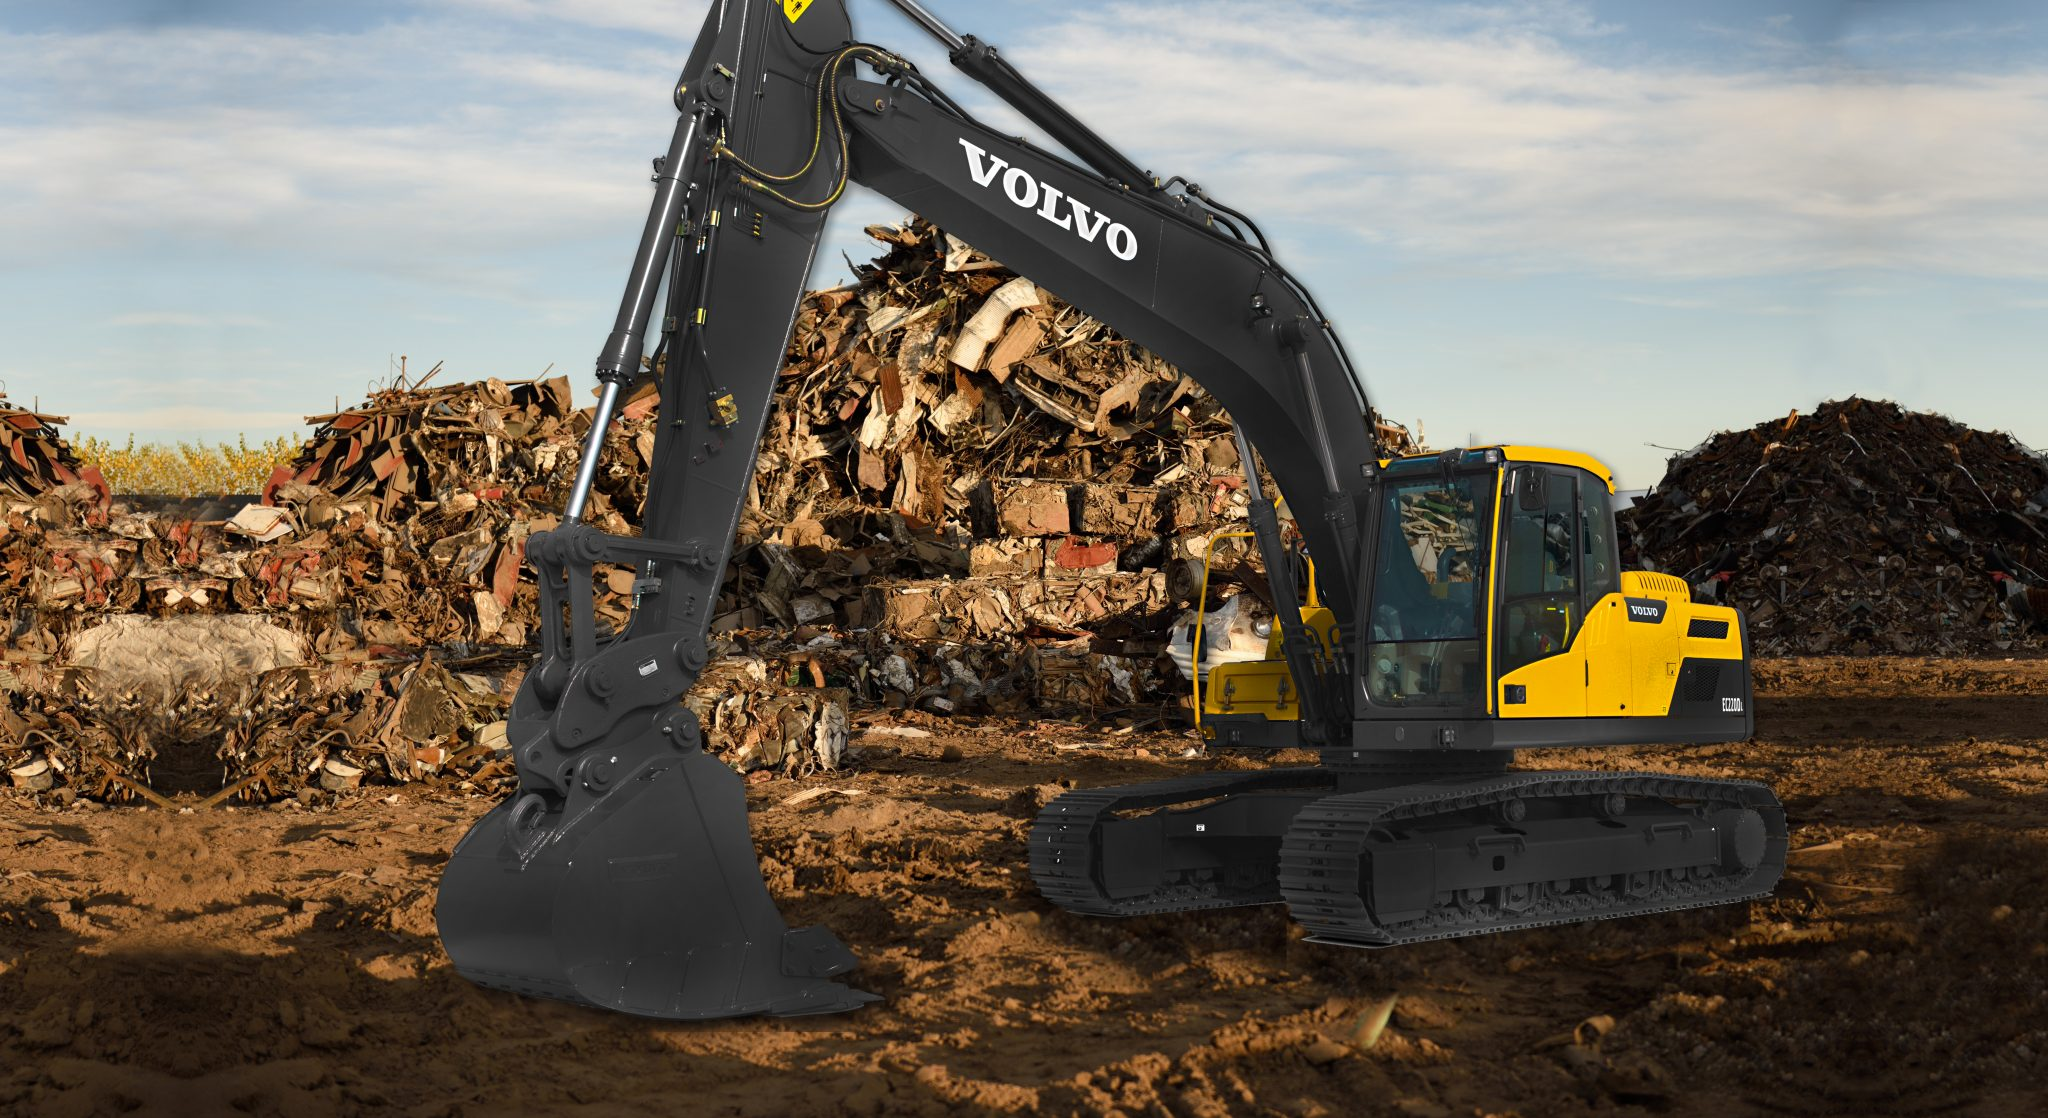 High Performance, Low Fuel Consumption - The Volvo EC220D Excavator 16